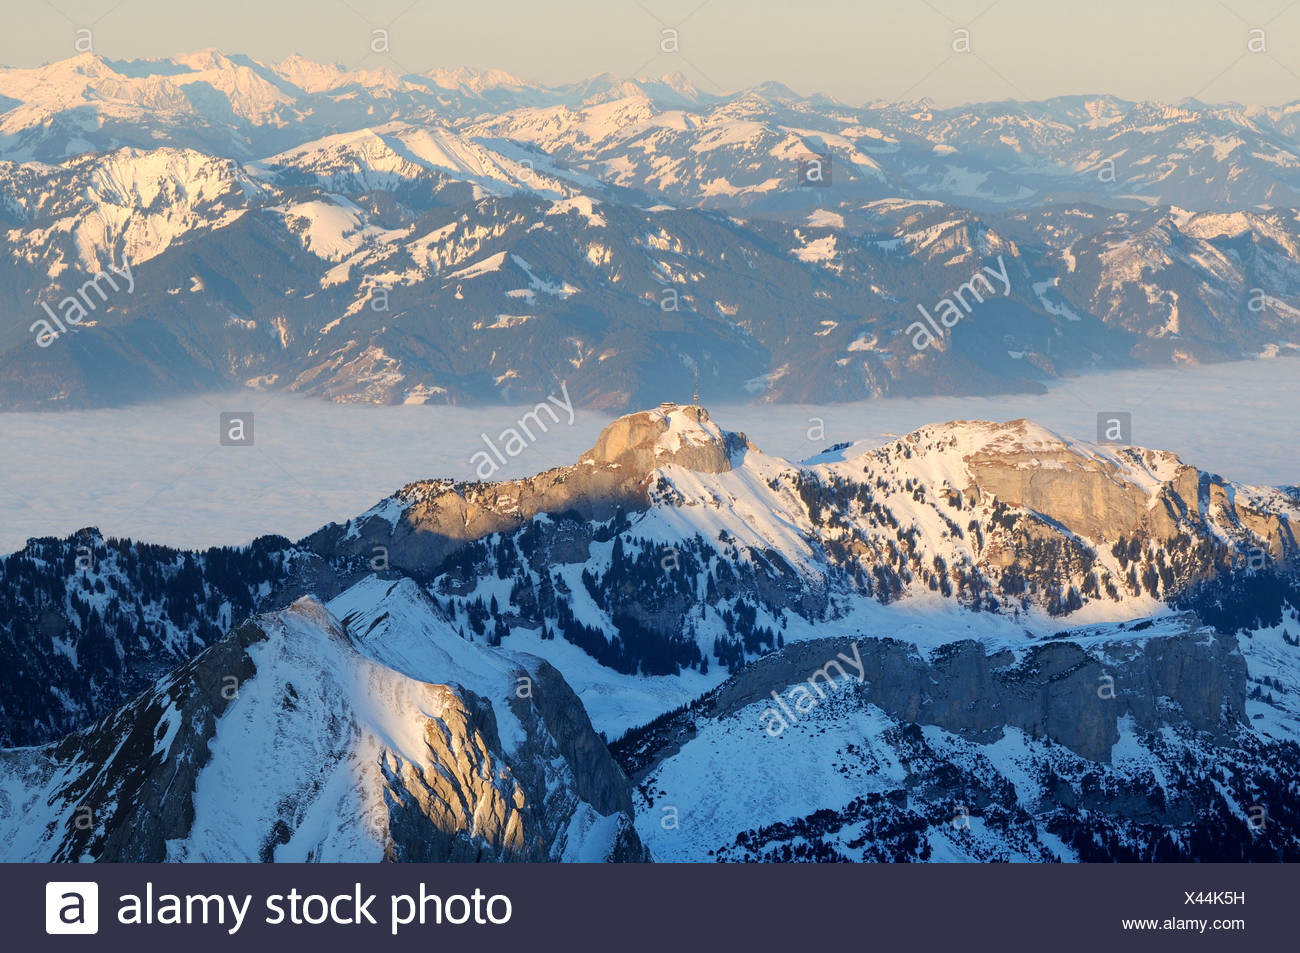 Mt Altmann and Mt Hoher Kasten in last daylight, between them the foggy Rheintal Valley, Canton of Appenzell Innerrhoden, Switz - Stock Image